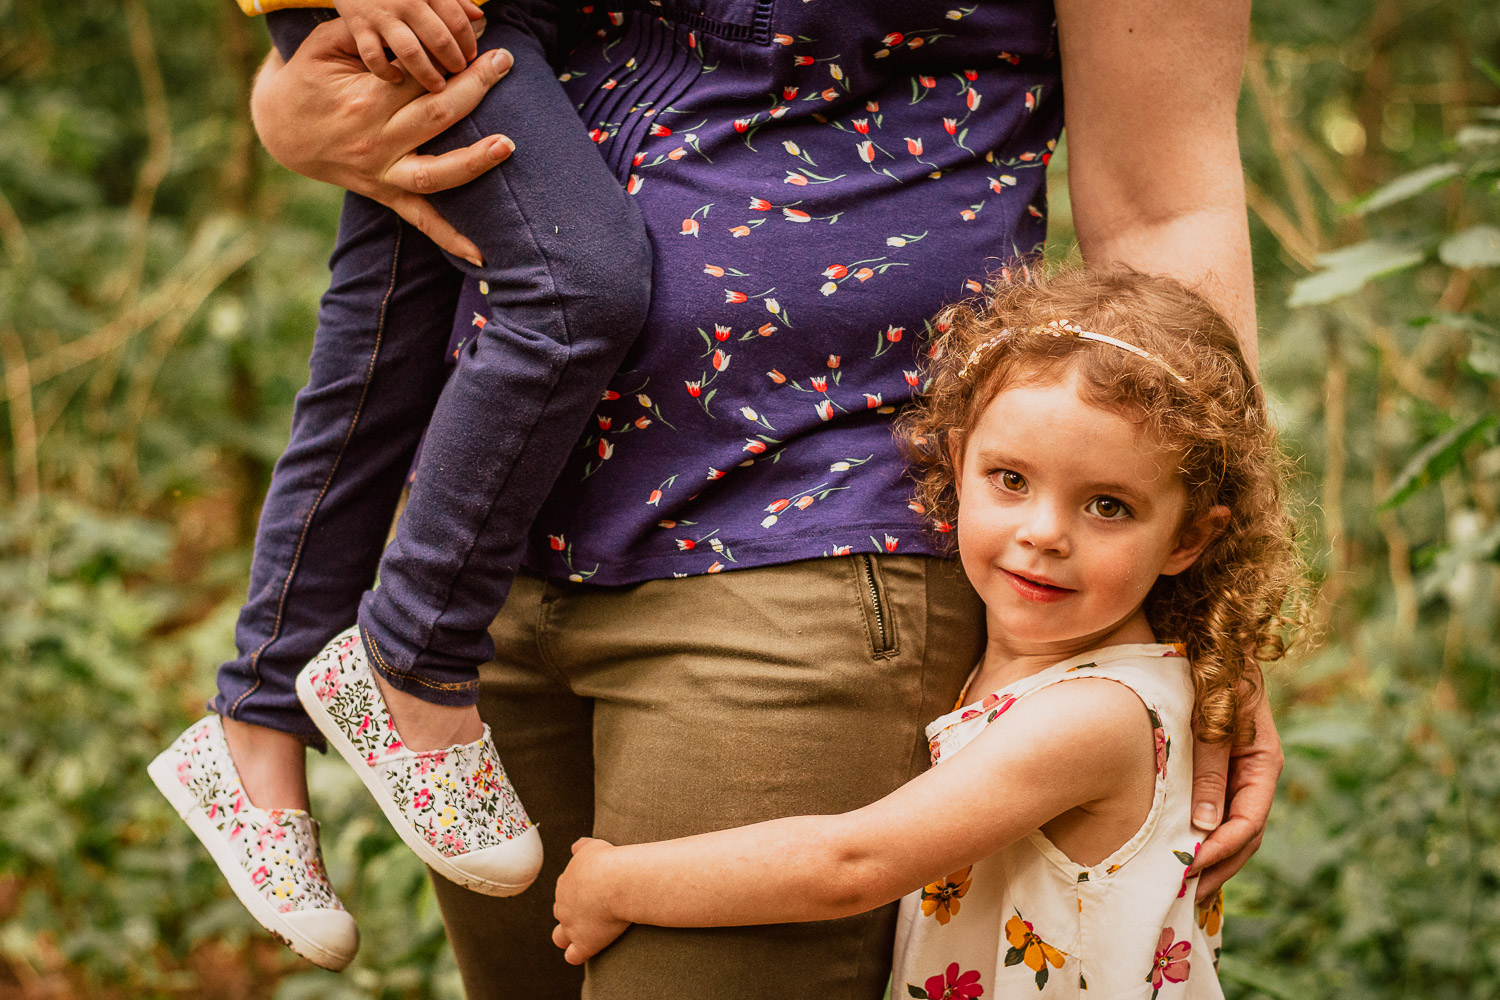 family photography in appleton, wi by daphodil photo & film